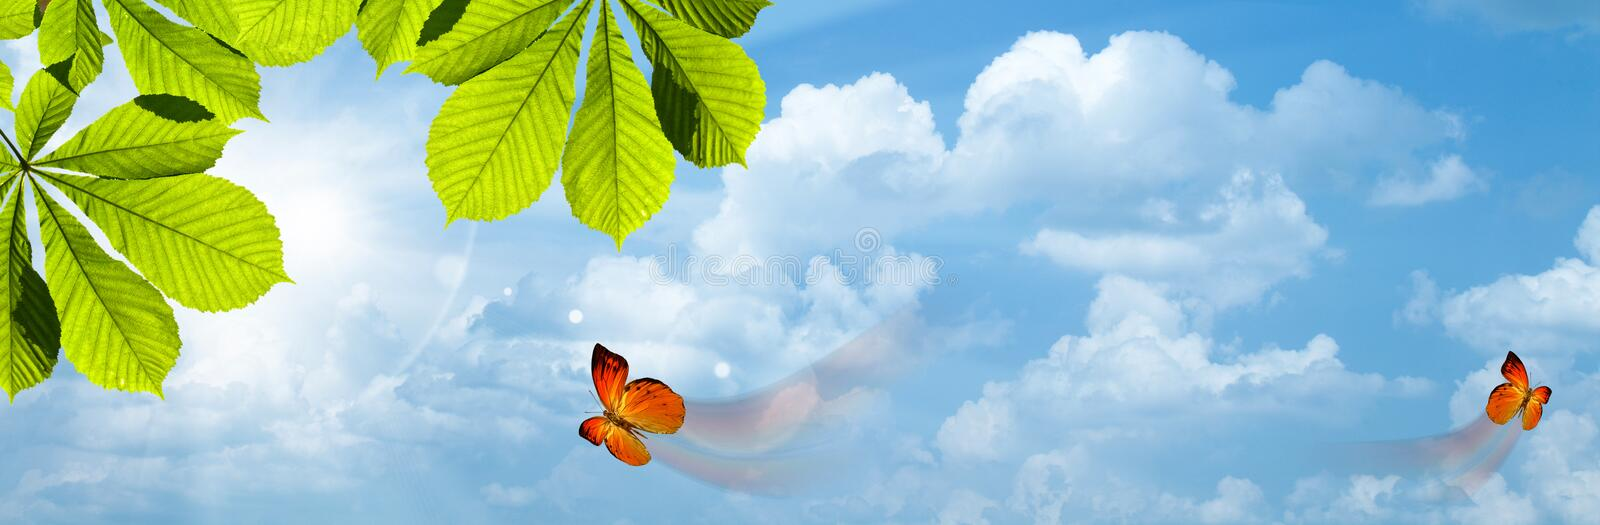 Download Butterfly. stock photo. Image of front, atmosphere, nature - 24744080